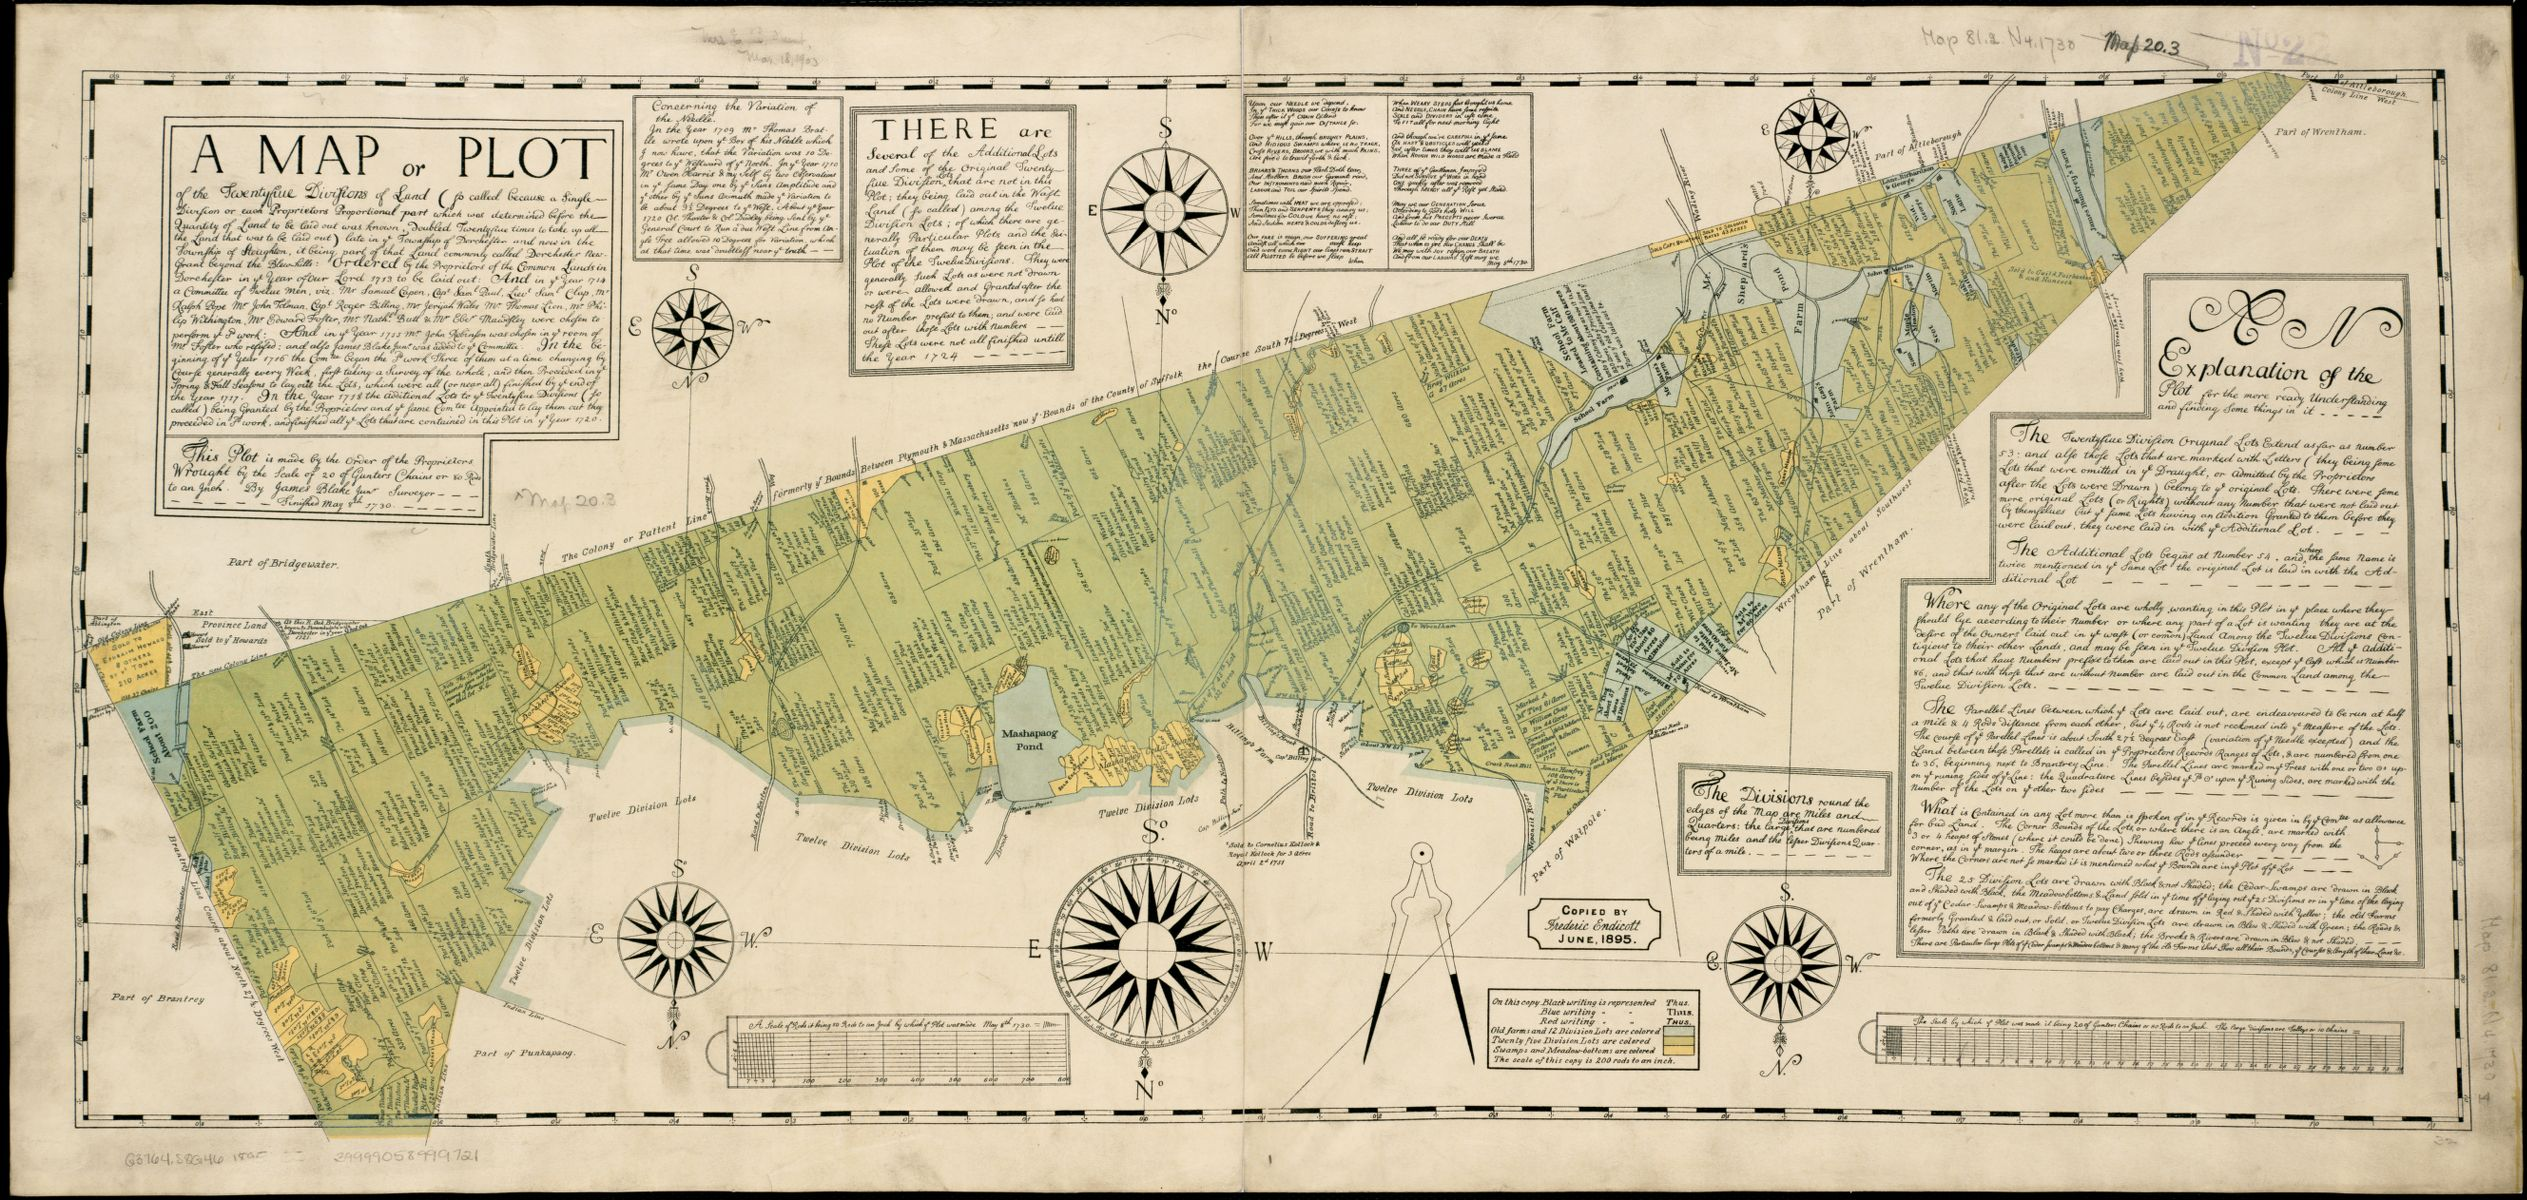 James Blake and Frederic Endicott, A map or plot of the twenty-five divisions of land… (1895 [1730])